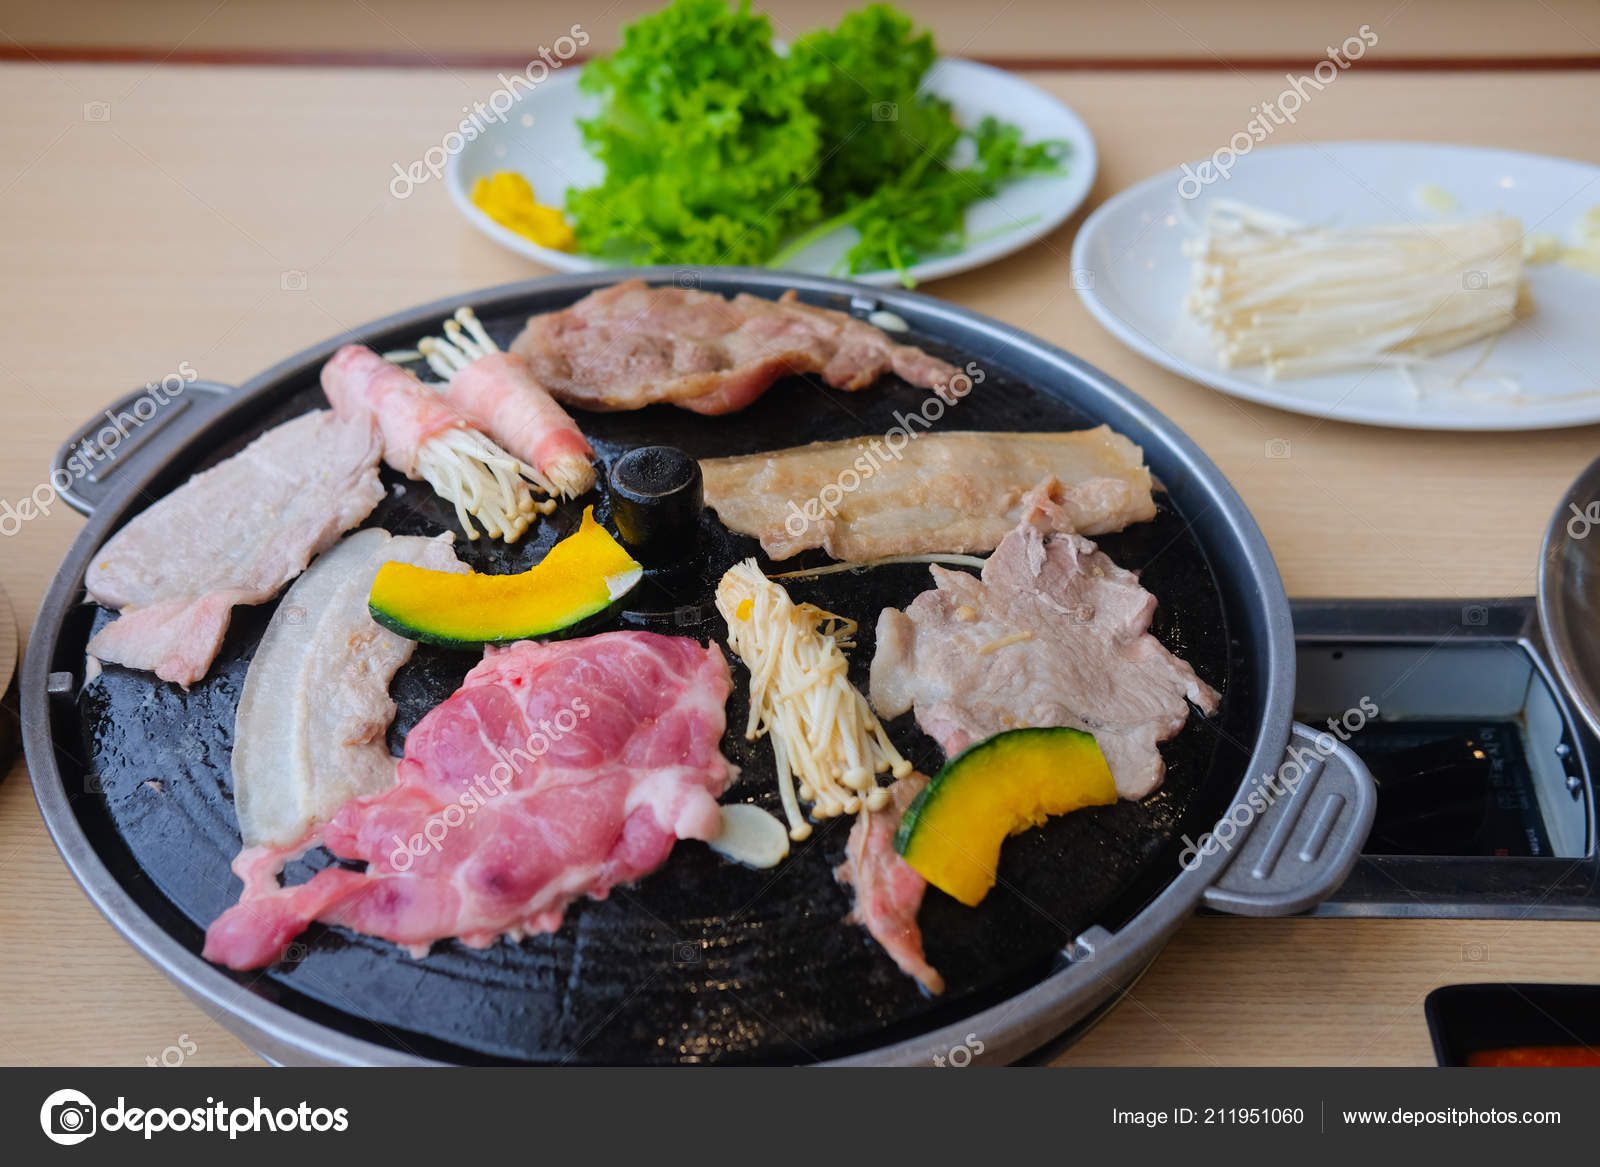 Korean Barbeque Grill Table Vegetable Set Stock Photo C Dontree